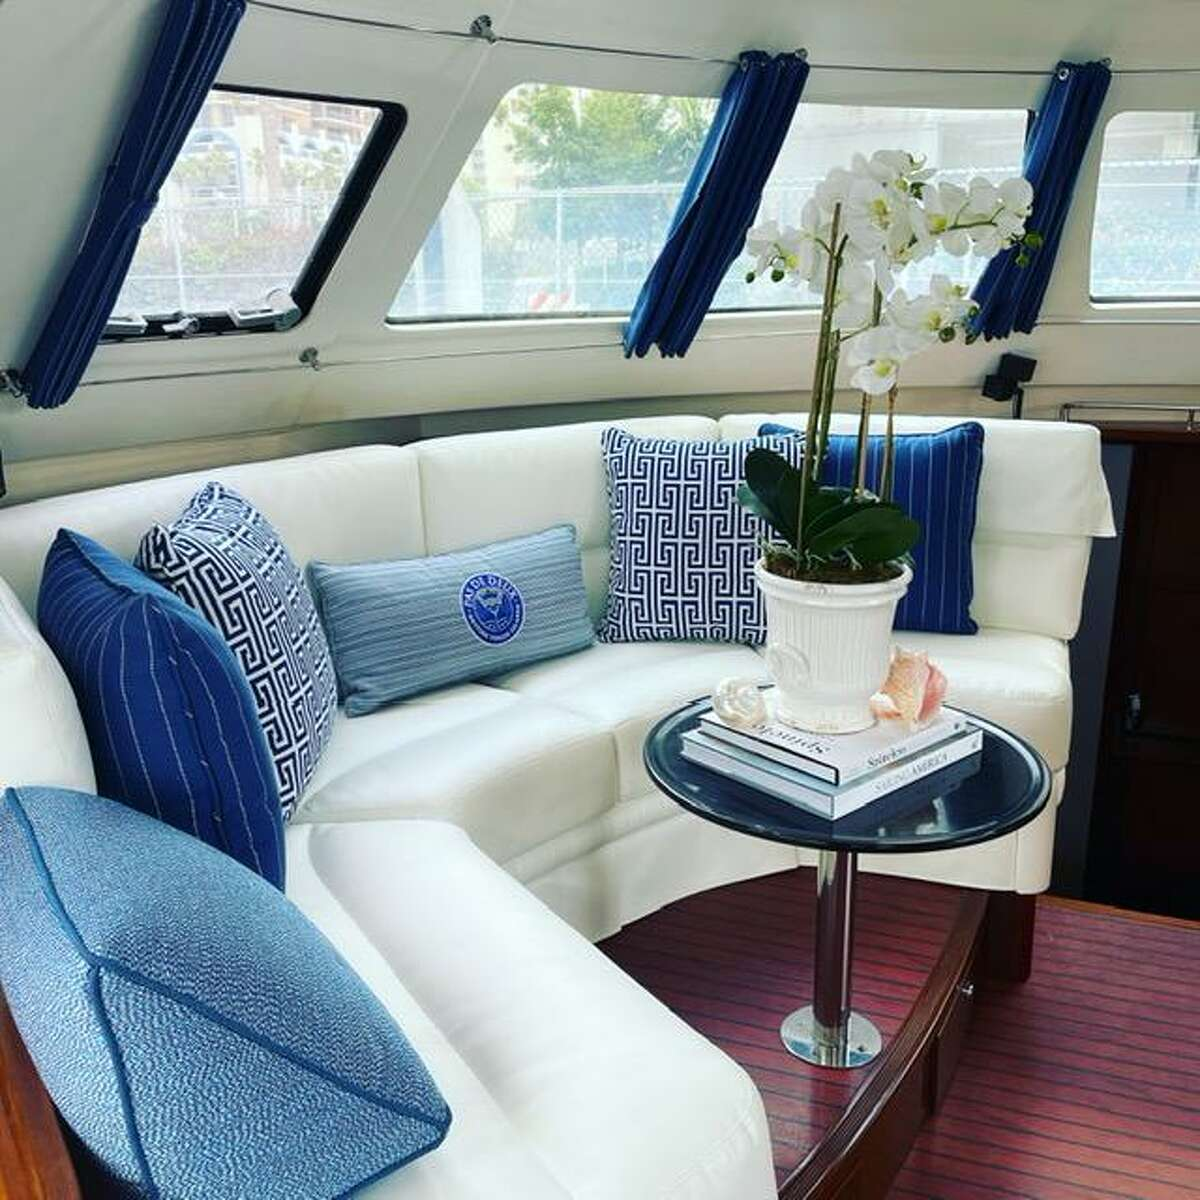 The main salon in the redecorated boat, the Pas de Deux, of Dr. Mike and Bethany McCann.